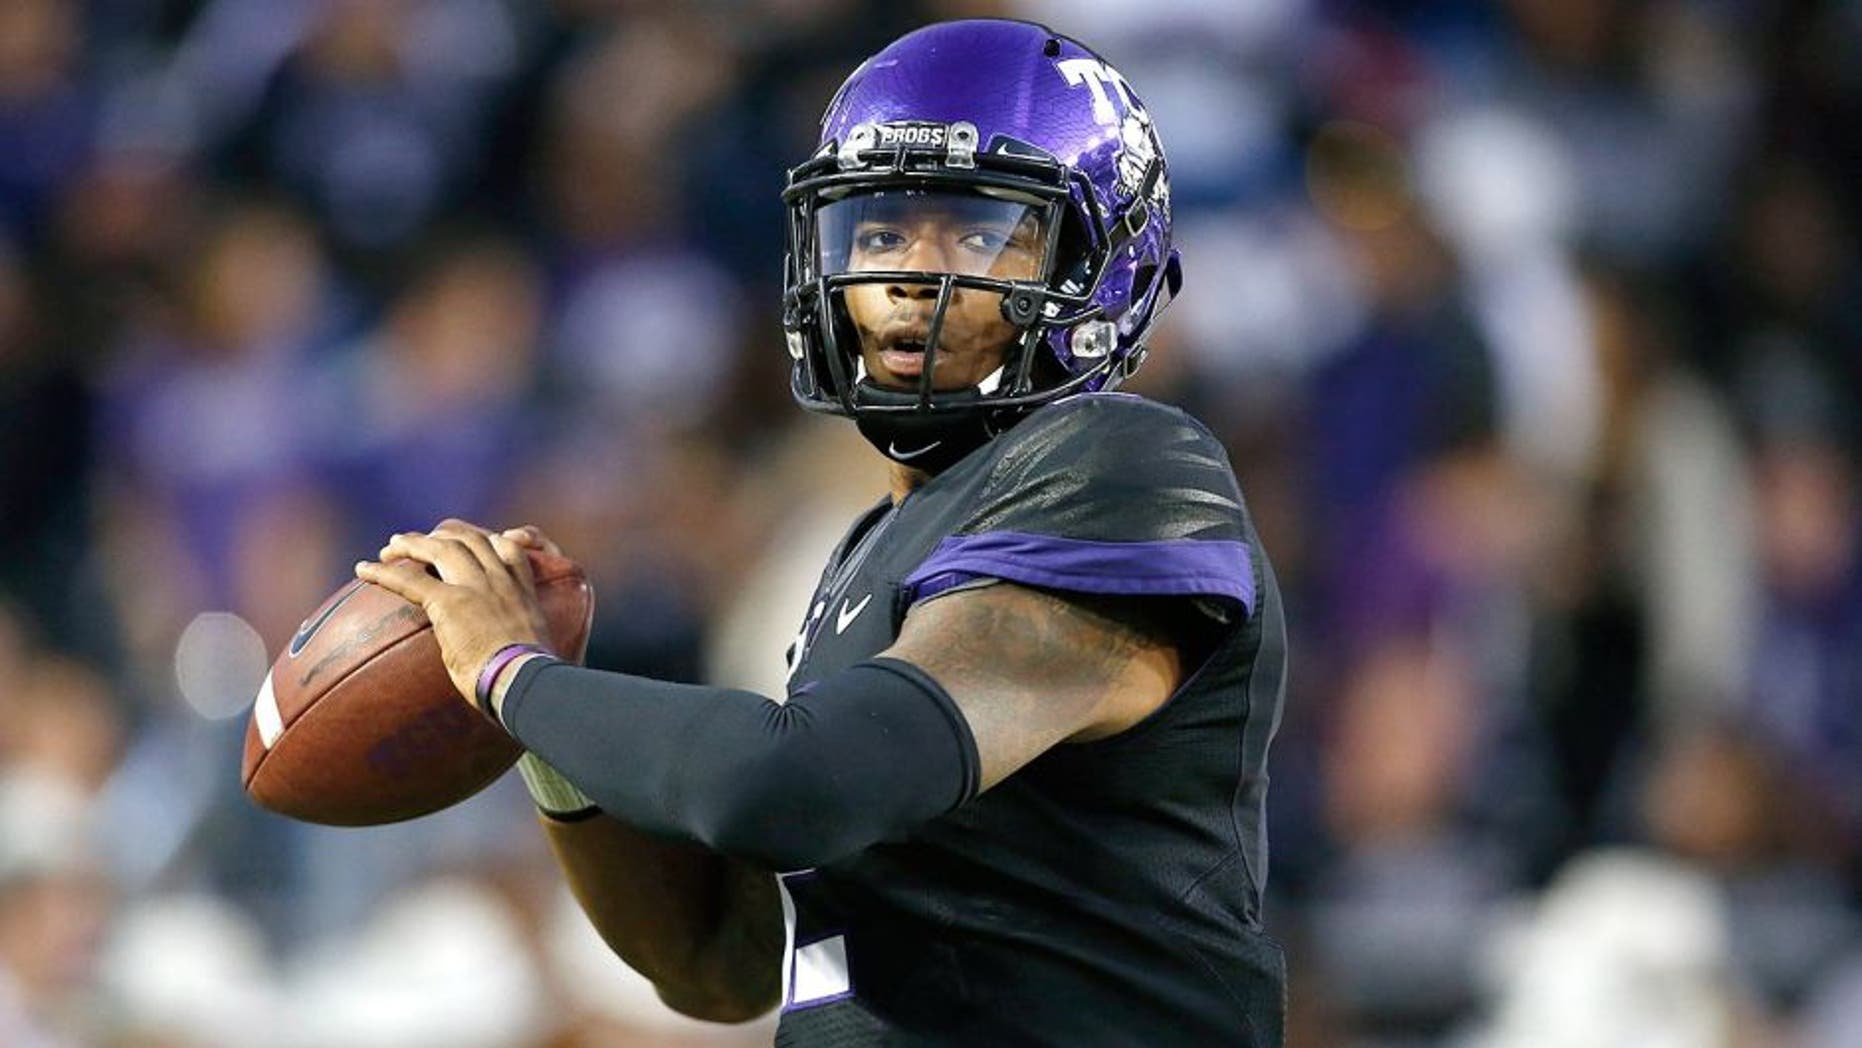 Nov 8, 2014; Fort Worth, TX, USA; TCU Horned Frogs quarterback Trevone Boykin (2) warms up before the game against the Kansas State Wildcats at Amon G. Carter Stadium. Mandatory Credit: Tim Heitman-USA TODAY Sports